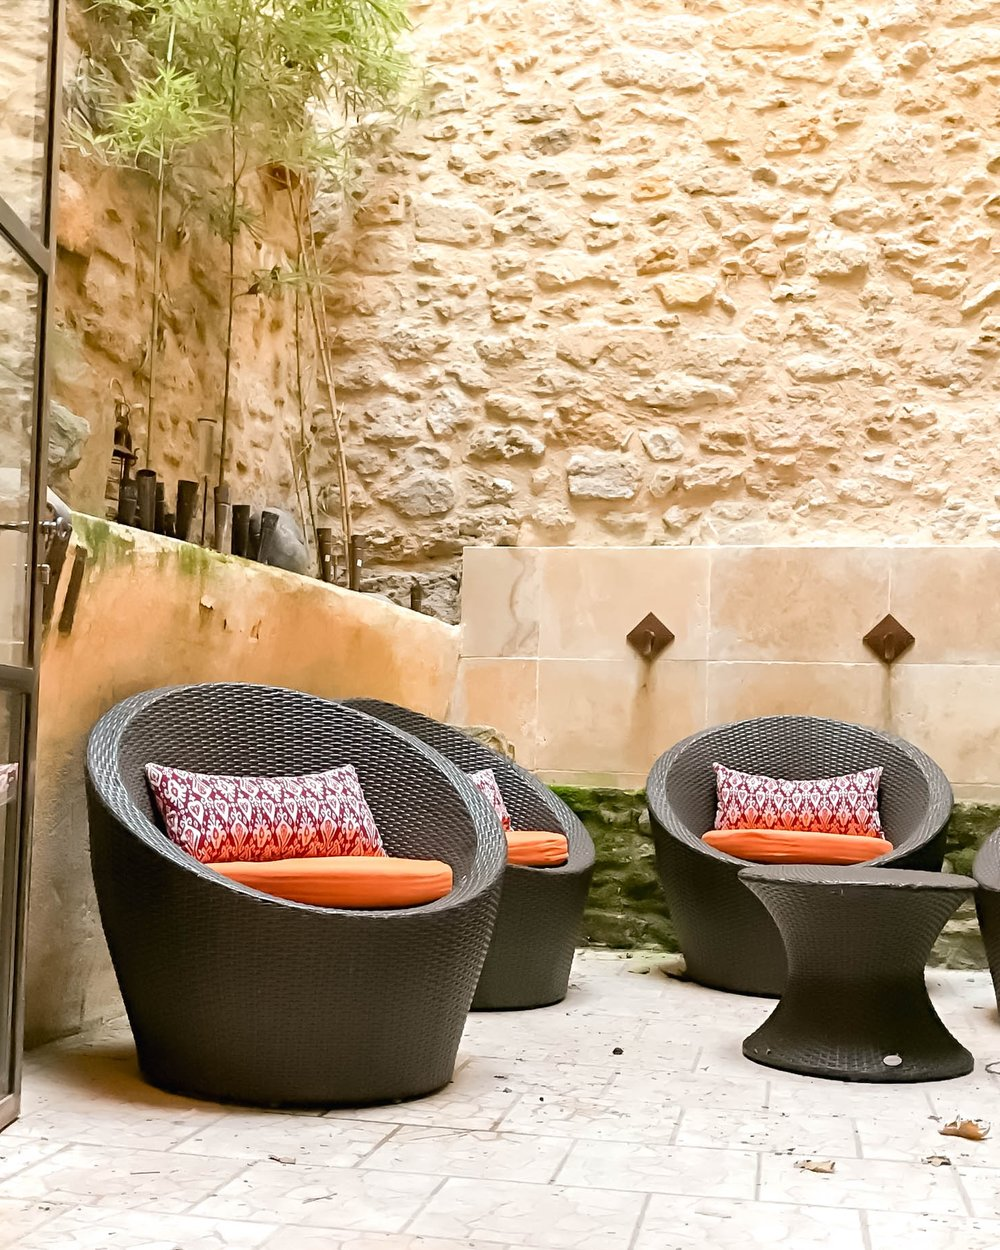 Seats in outdoor patio in Provence, France